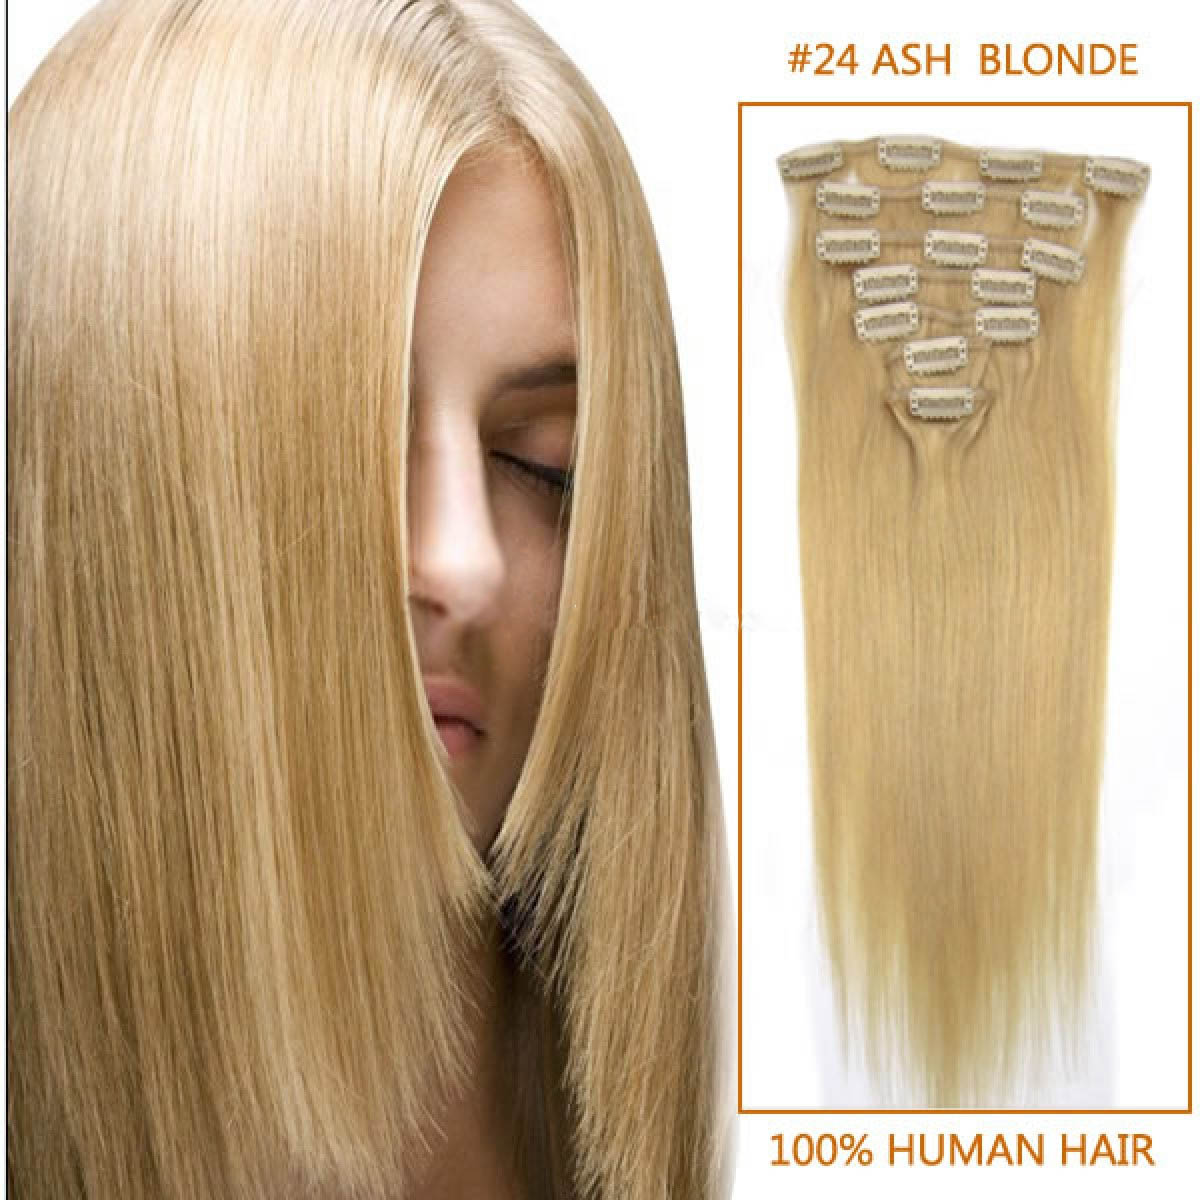 30 Inch 24 Ash Blonde Clip In Remy Human Hair Extensions 9pcs